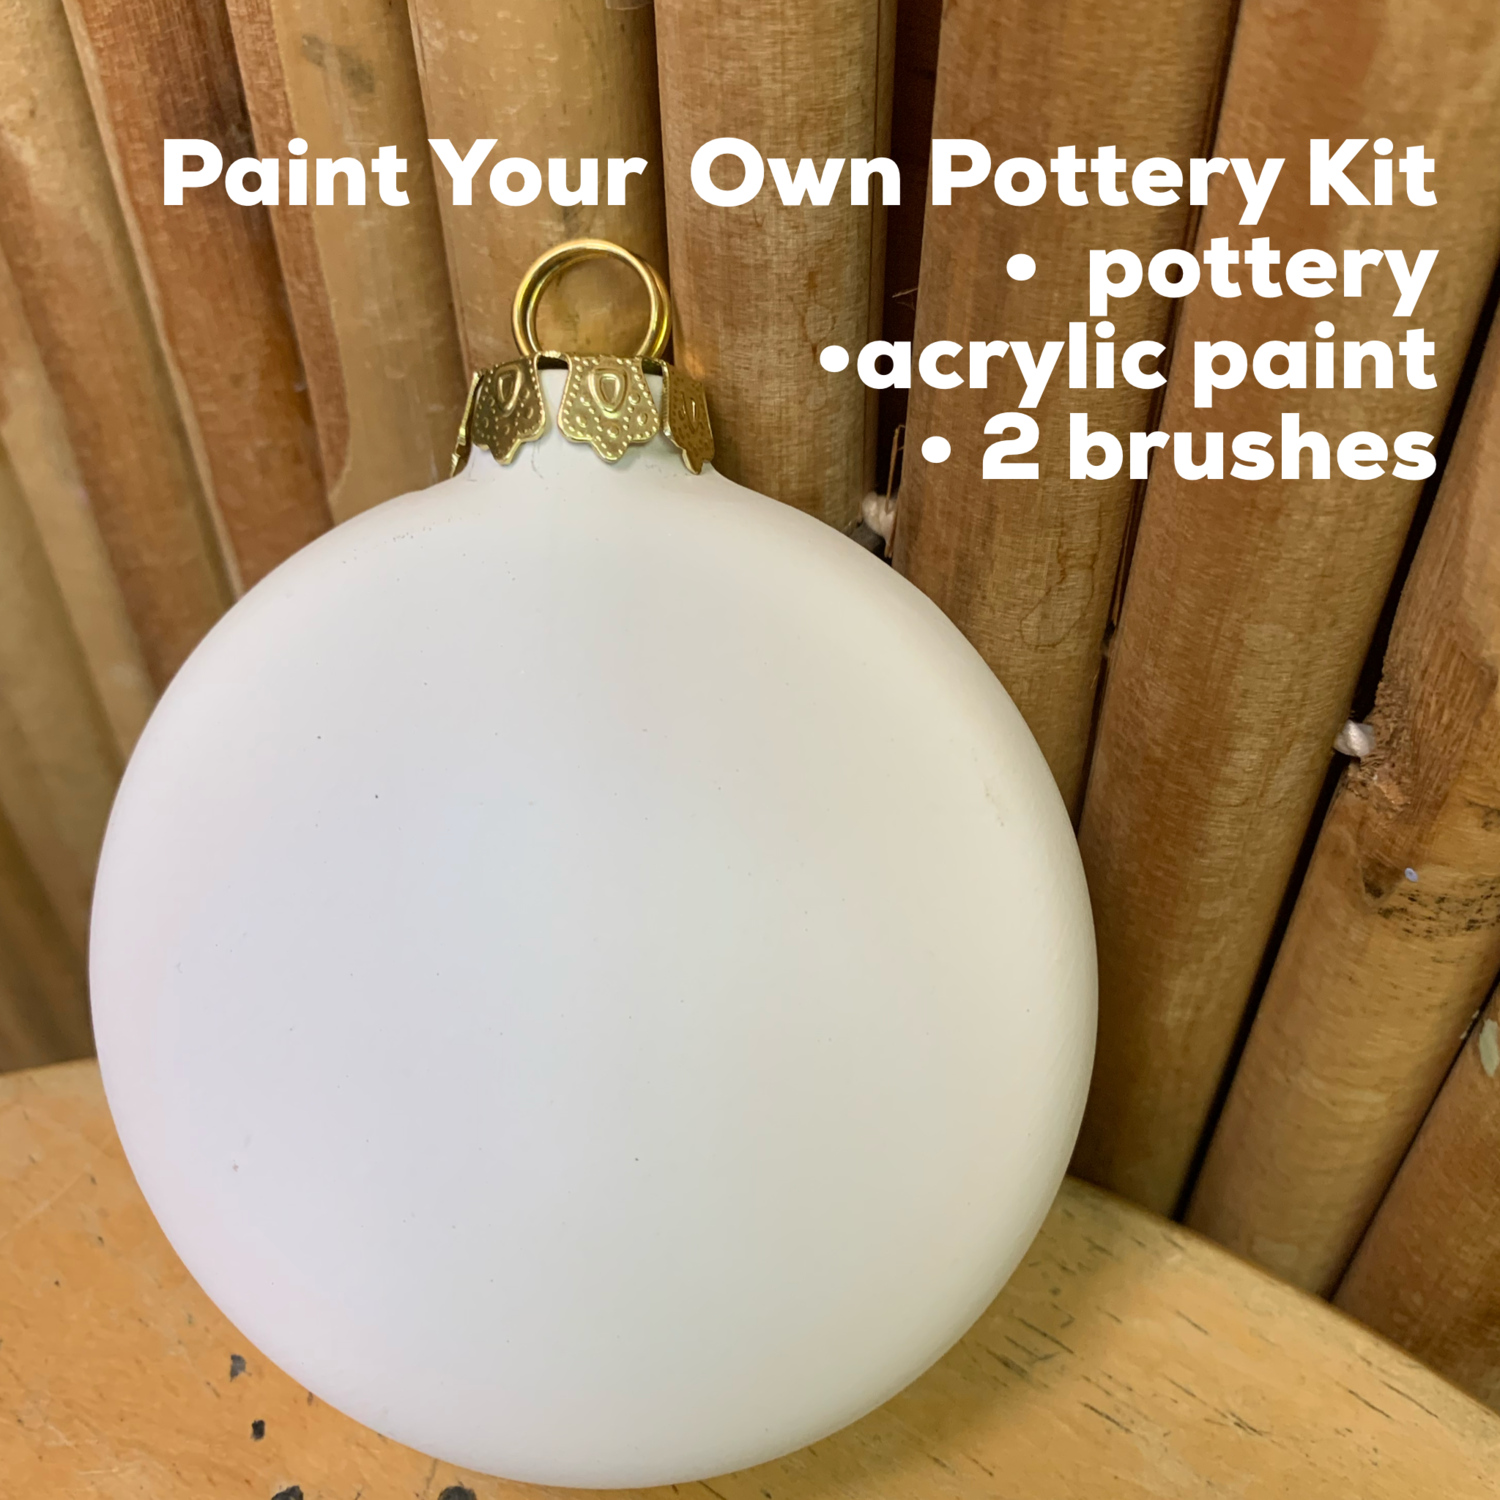 NO FIRE Paint Your Own Pottery Kit -  Ceramic Round Flat Ornament Acrylic Painting Kit